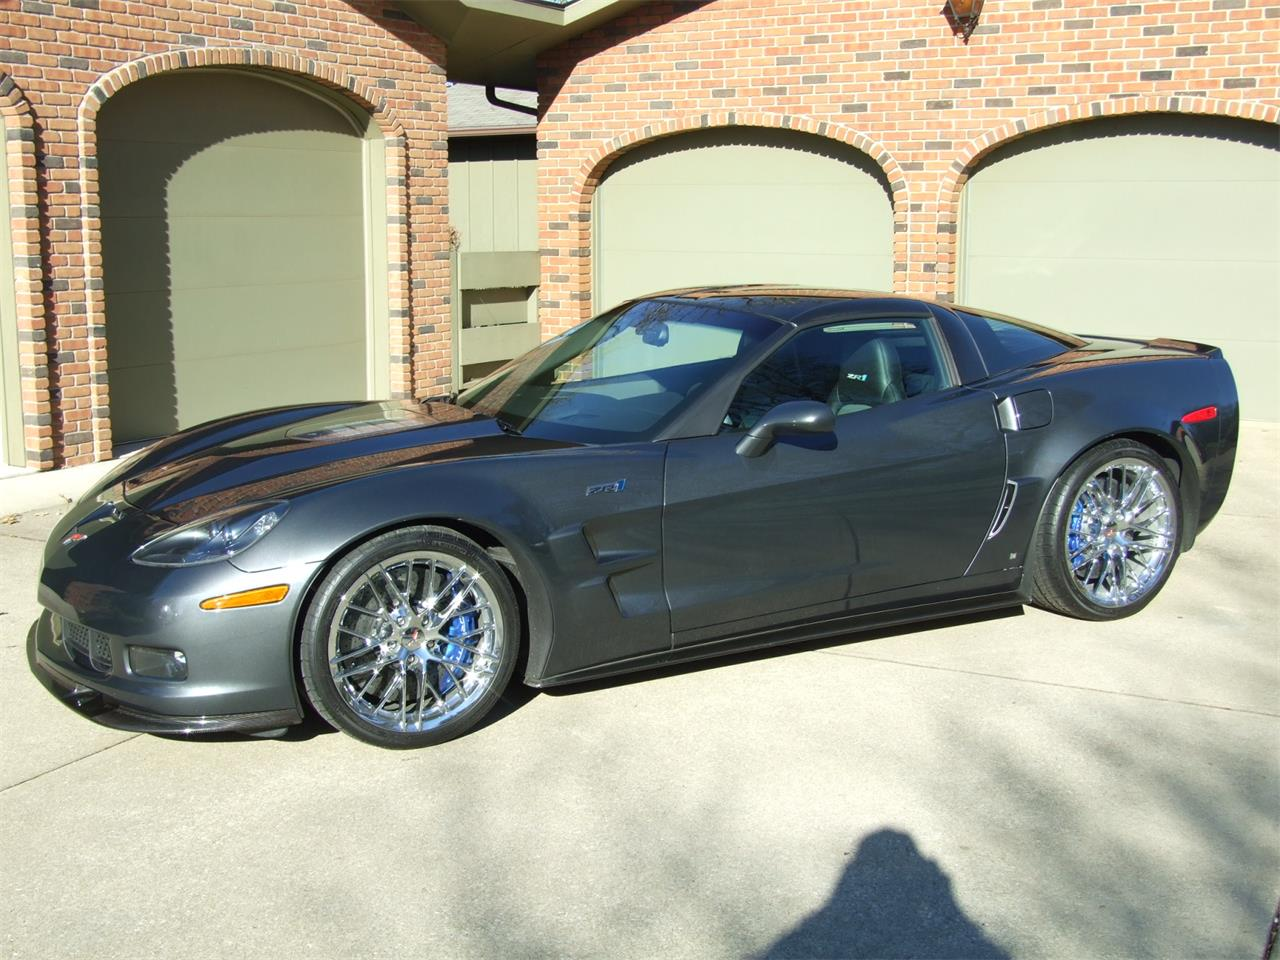 Large Picture of 2009 Corvette ZR1 - $75,000.00 Offered by Auto Connection, Inc. - DJBI